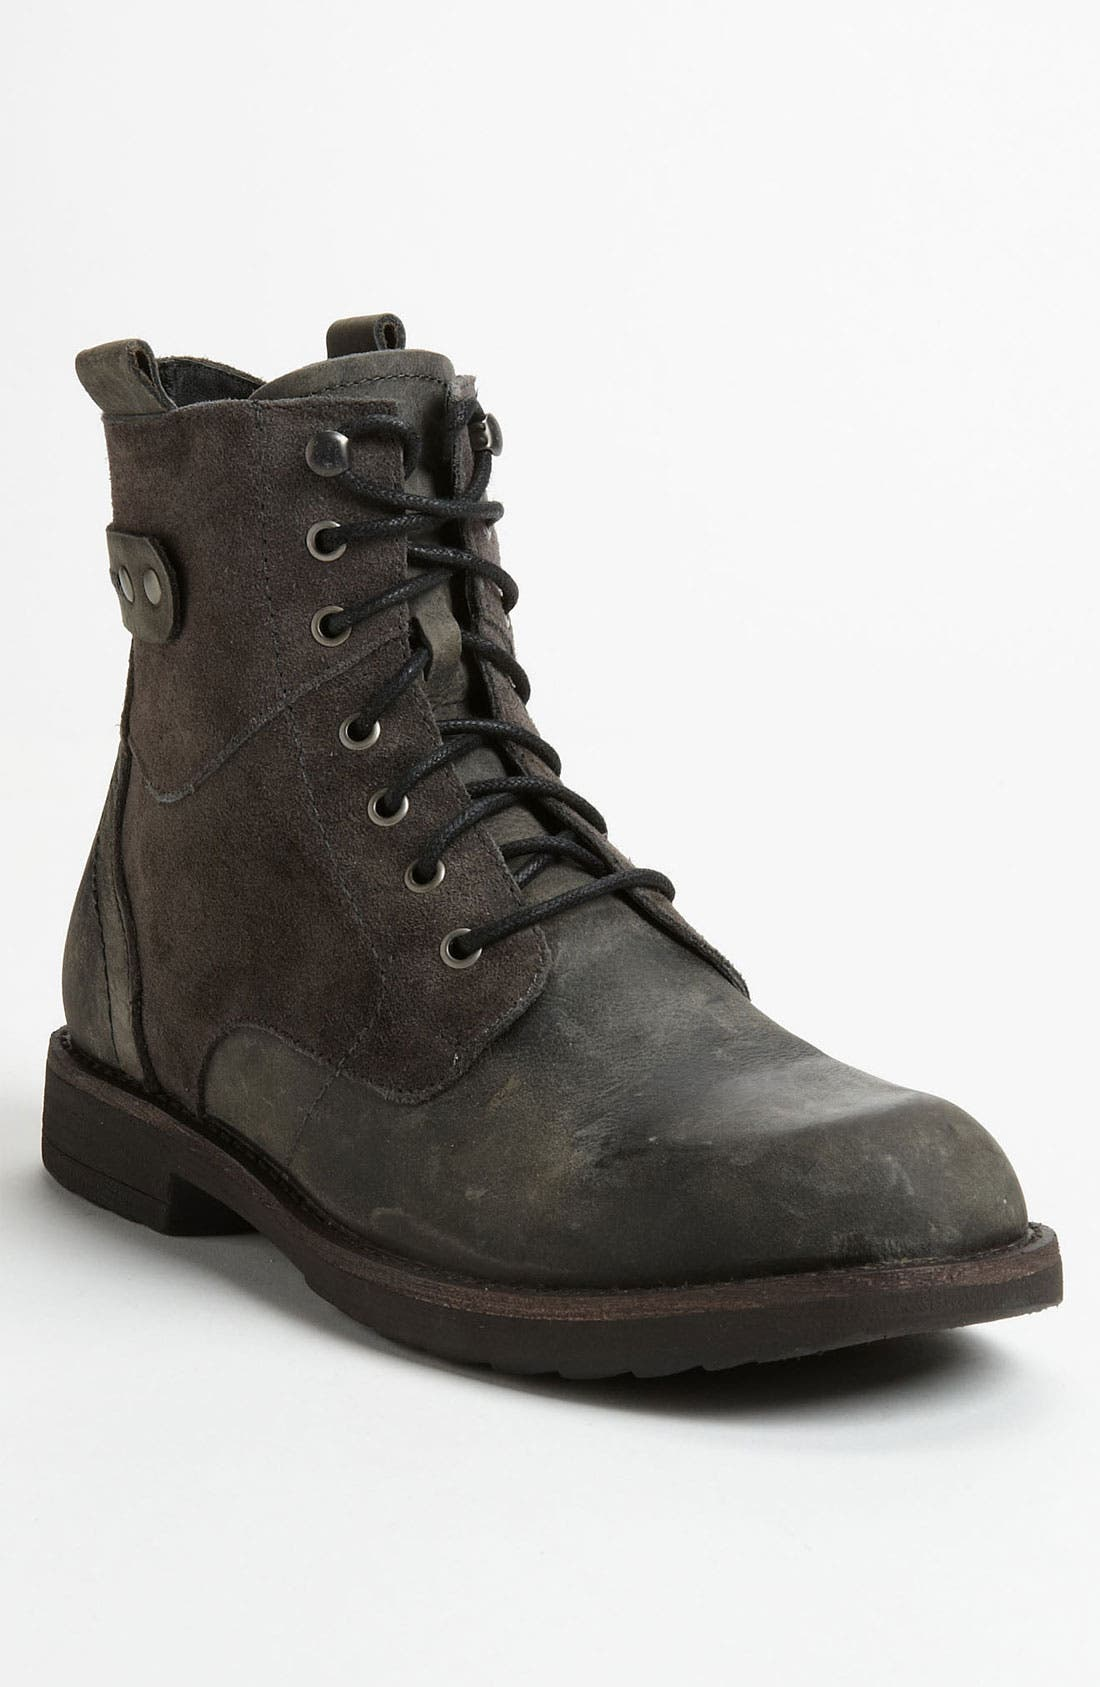 Alternate Image 1 Selected - Bed Stu 'Region' Boot (Online Only)